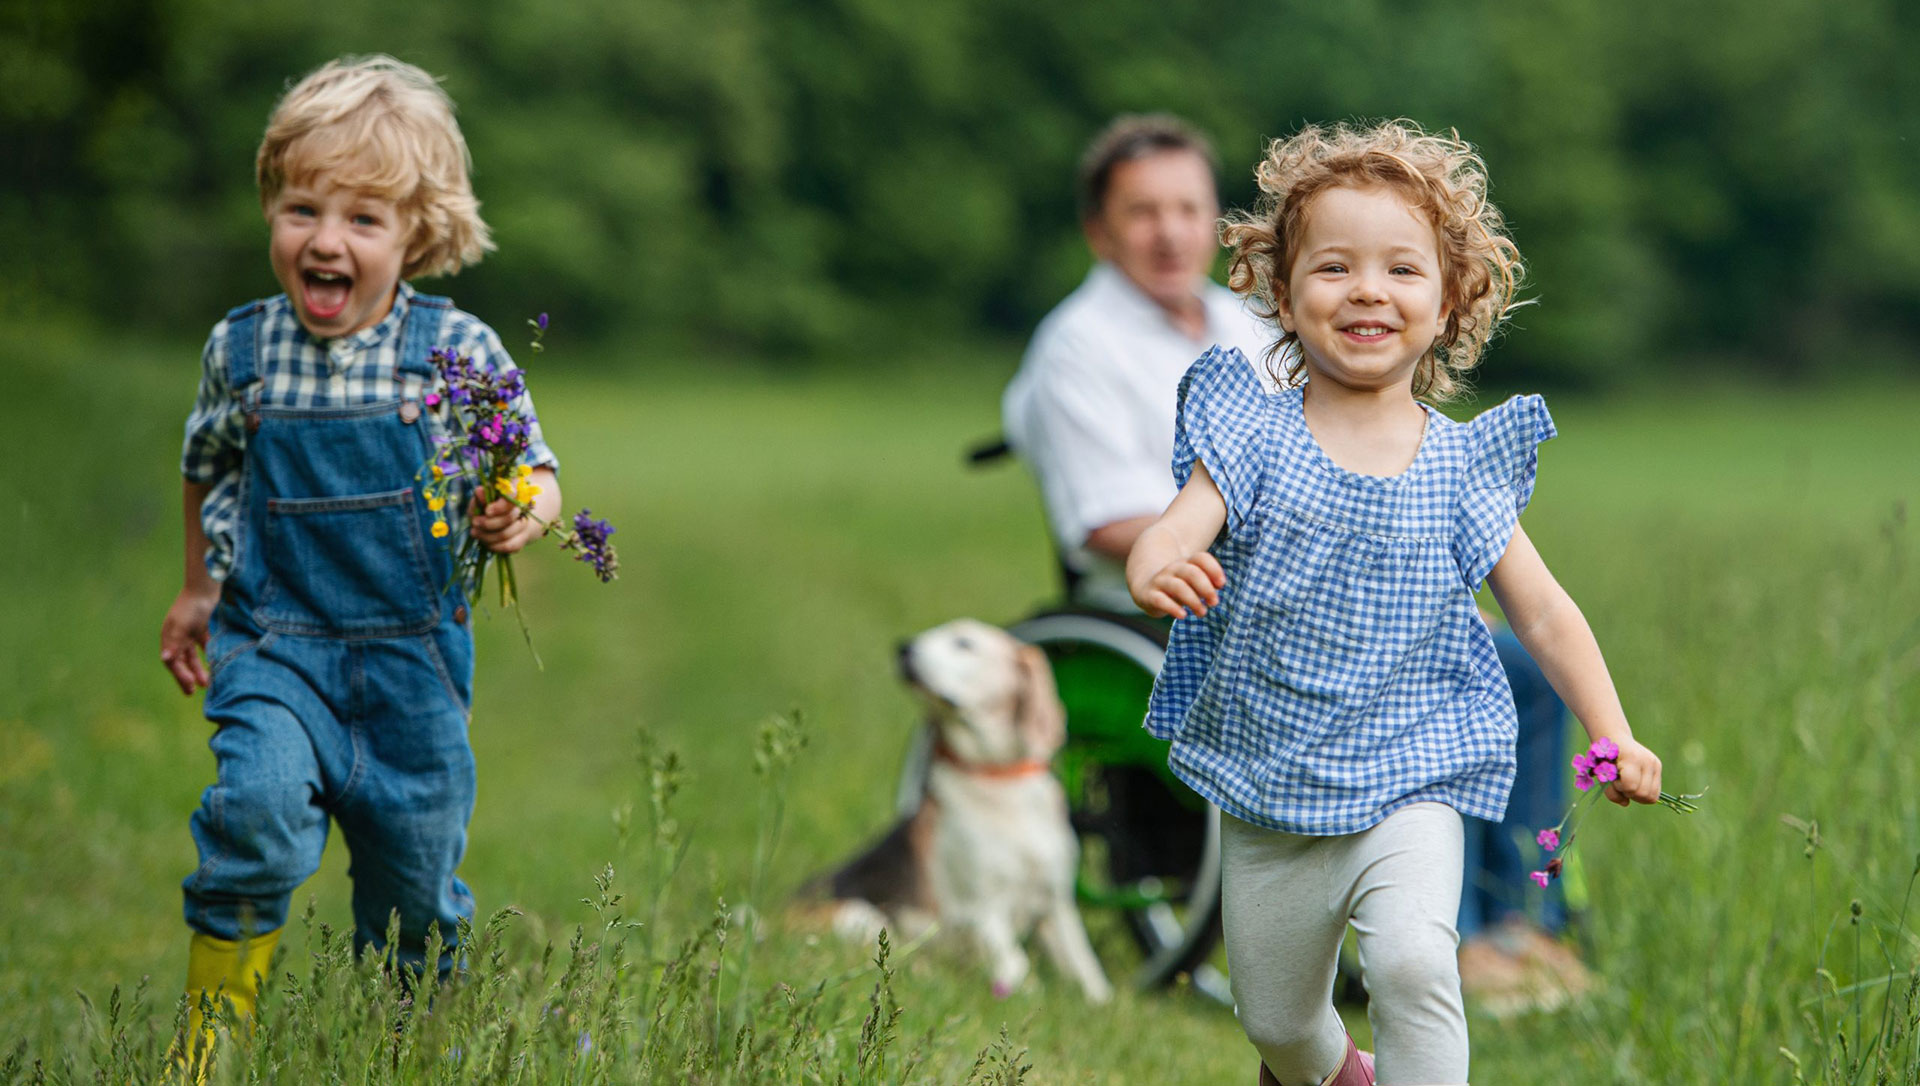 A boy and a girl, both around 5 years old, running in the field holding flowers. Their father is in the background in his wheelchair with their dog.